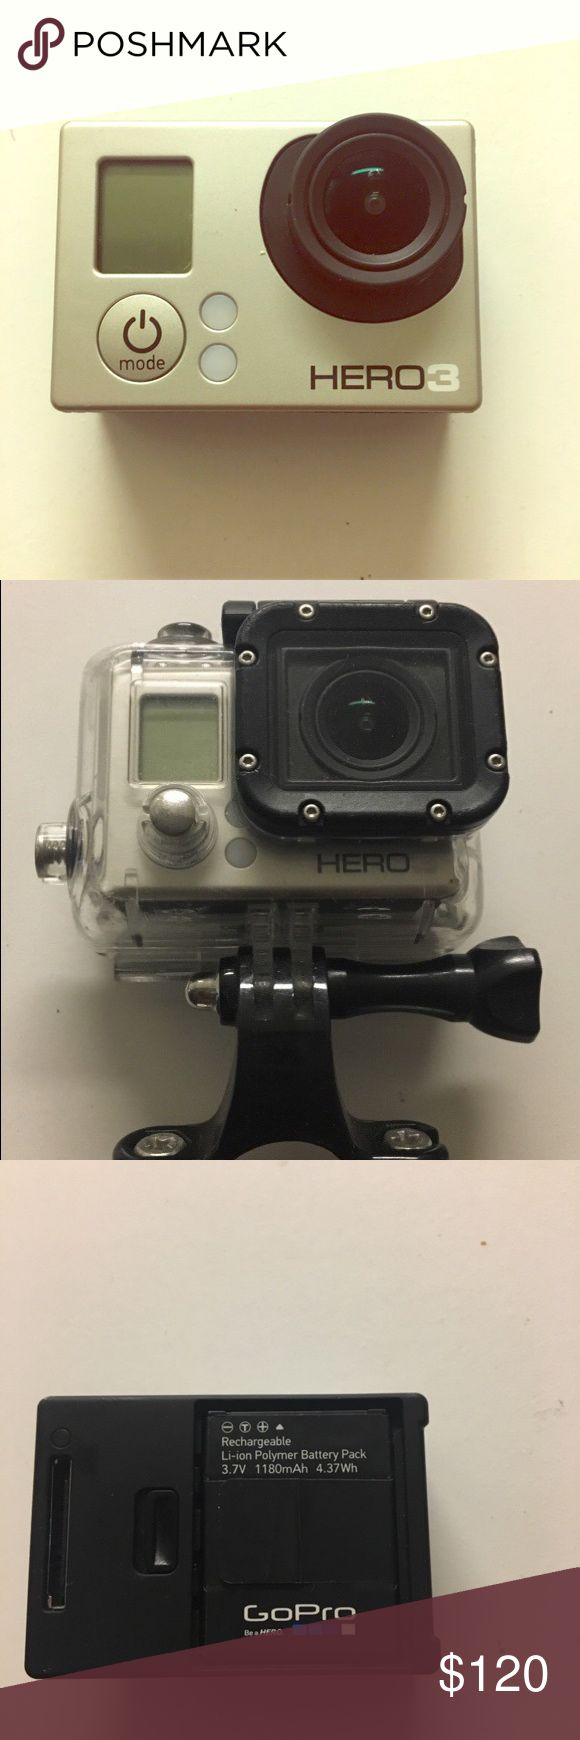 GoPro Hero 3 Silver GoPro 3 with protective water proof case gopro Other